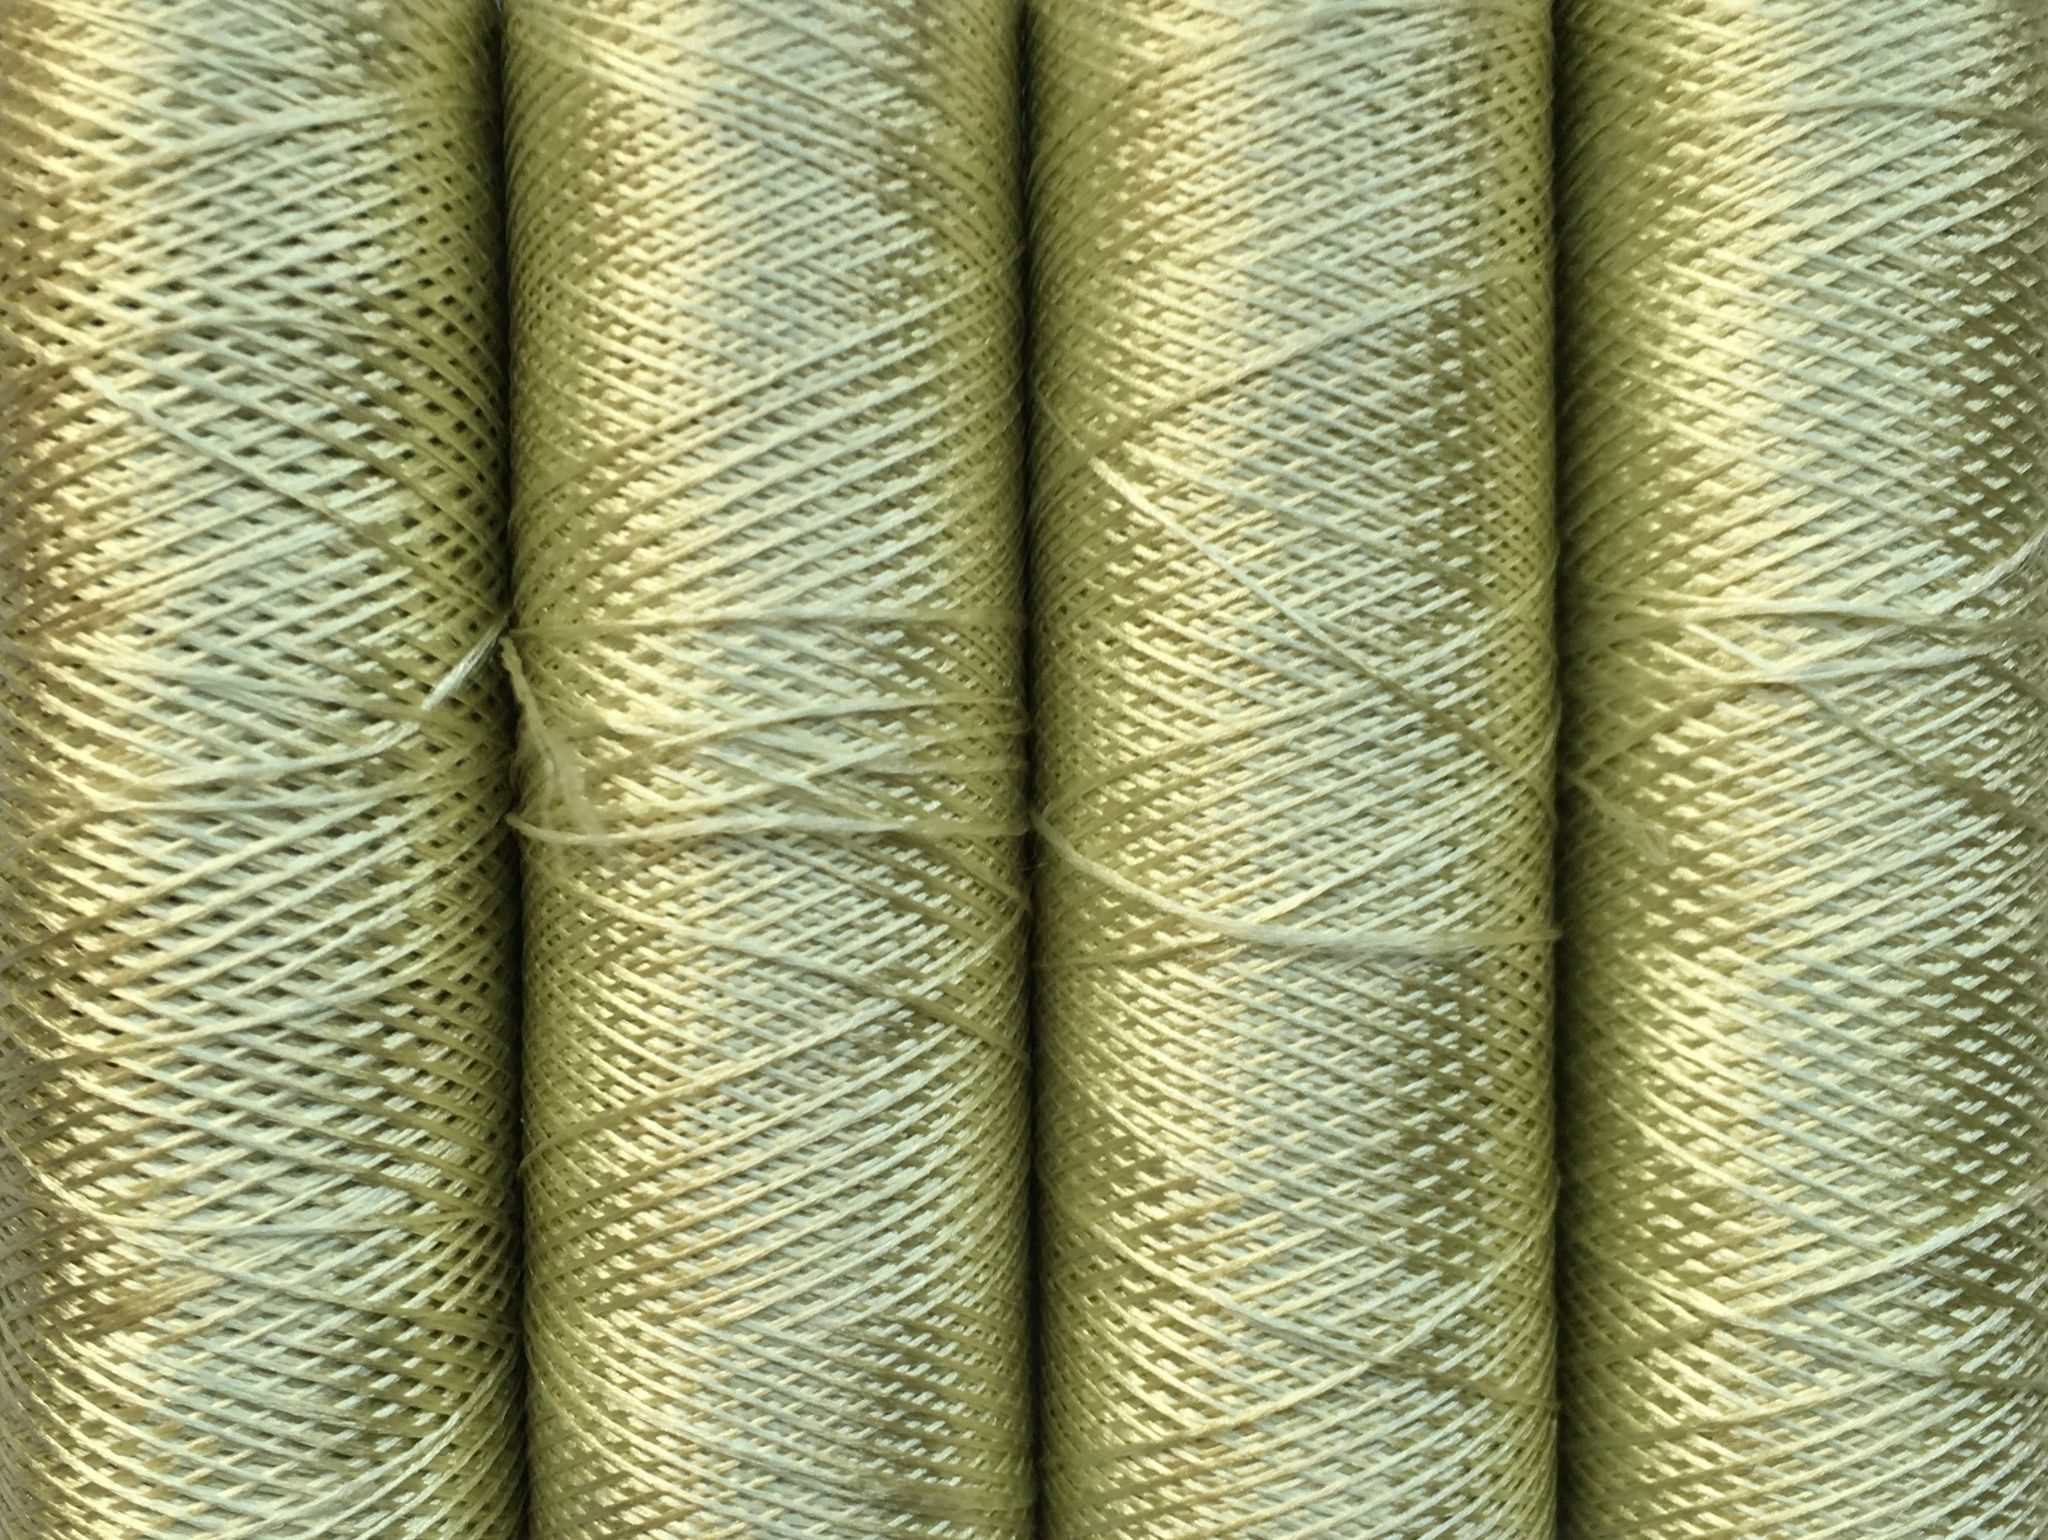 116 Linden - Pure Silk - Embroidery Thread